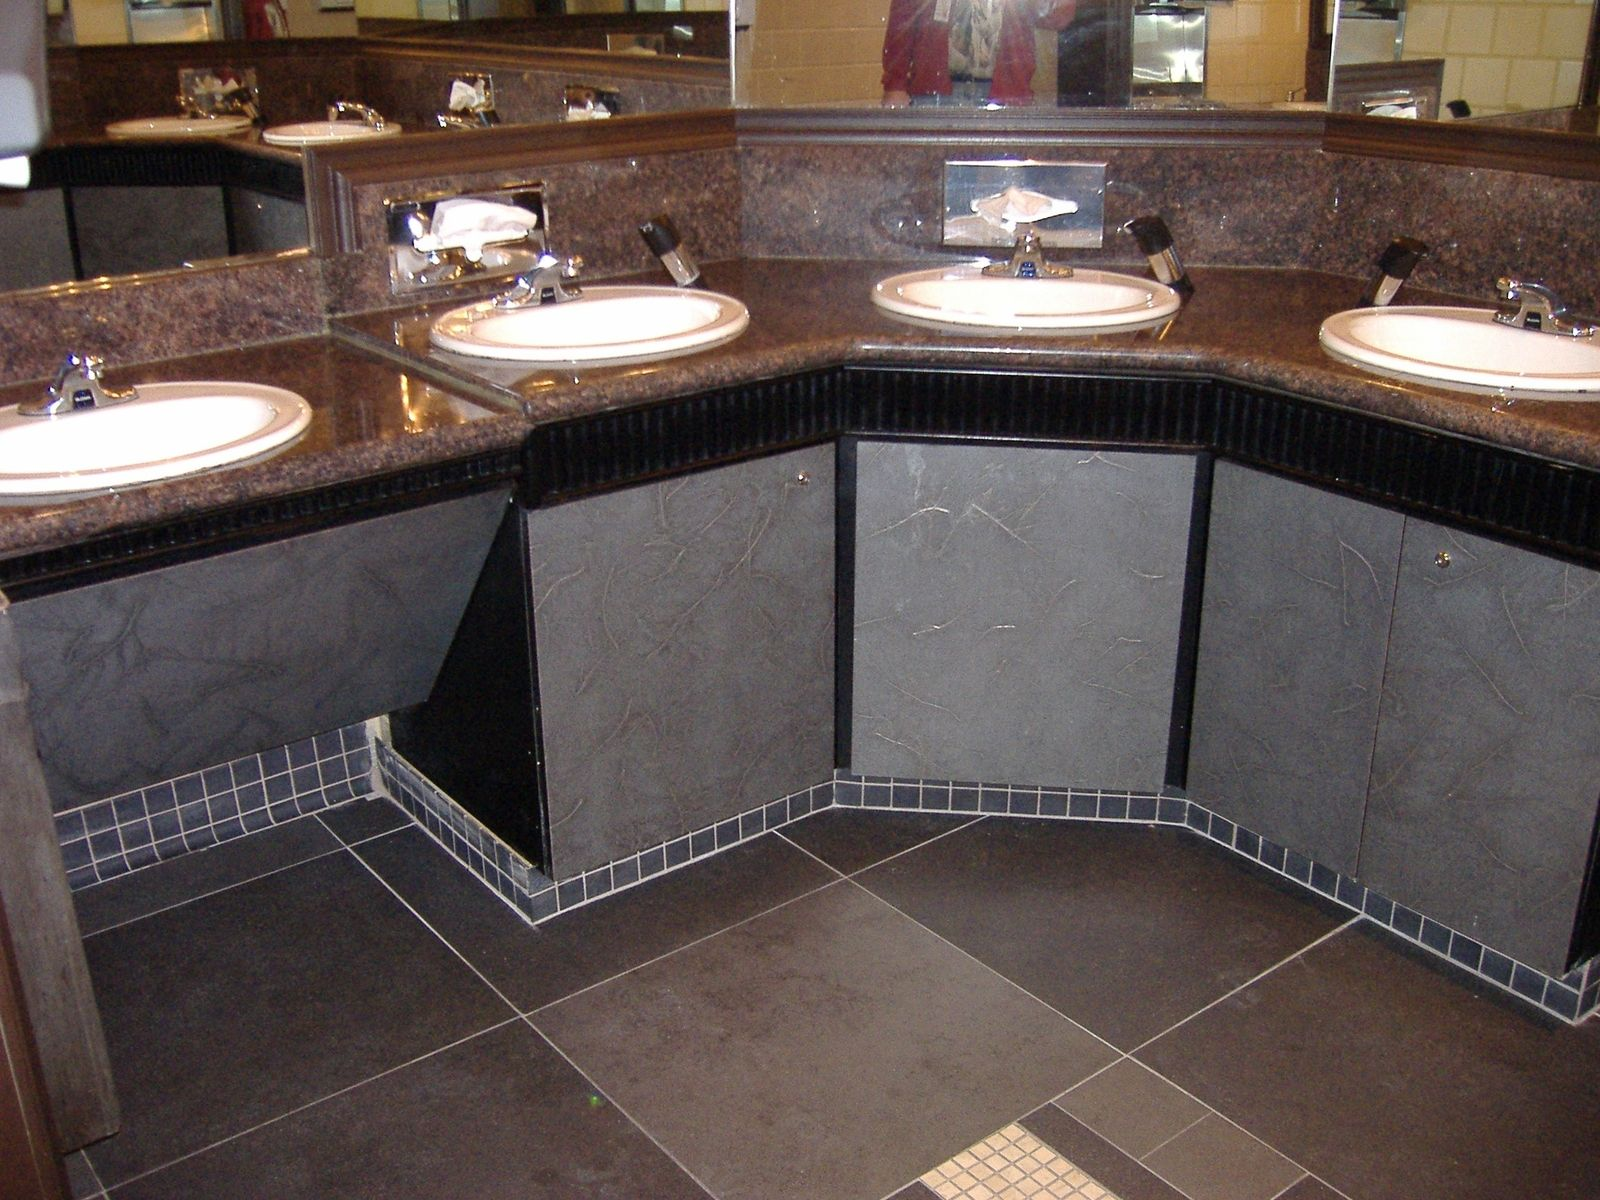 Hand Crafted Custom Cabinets For Casino Bathrooms By Hmi Millworks